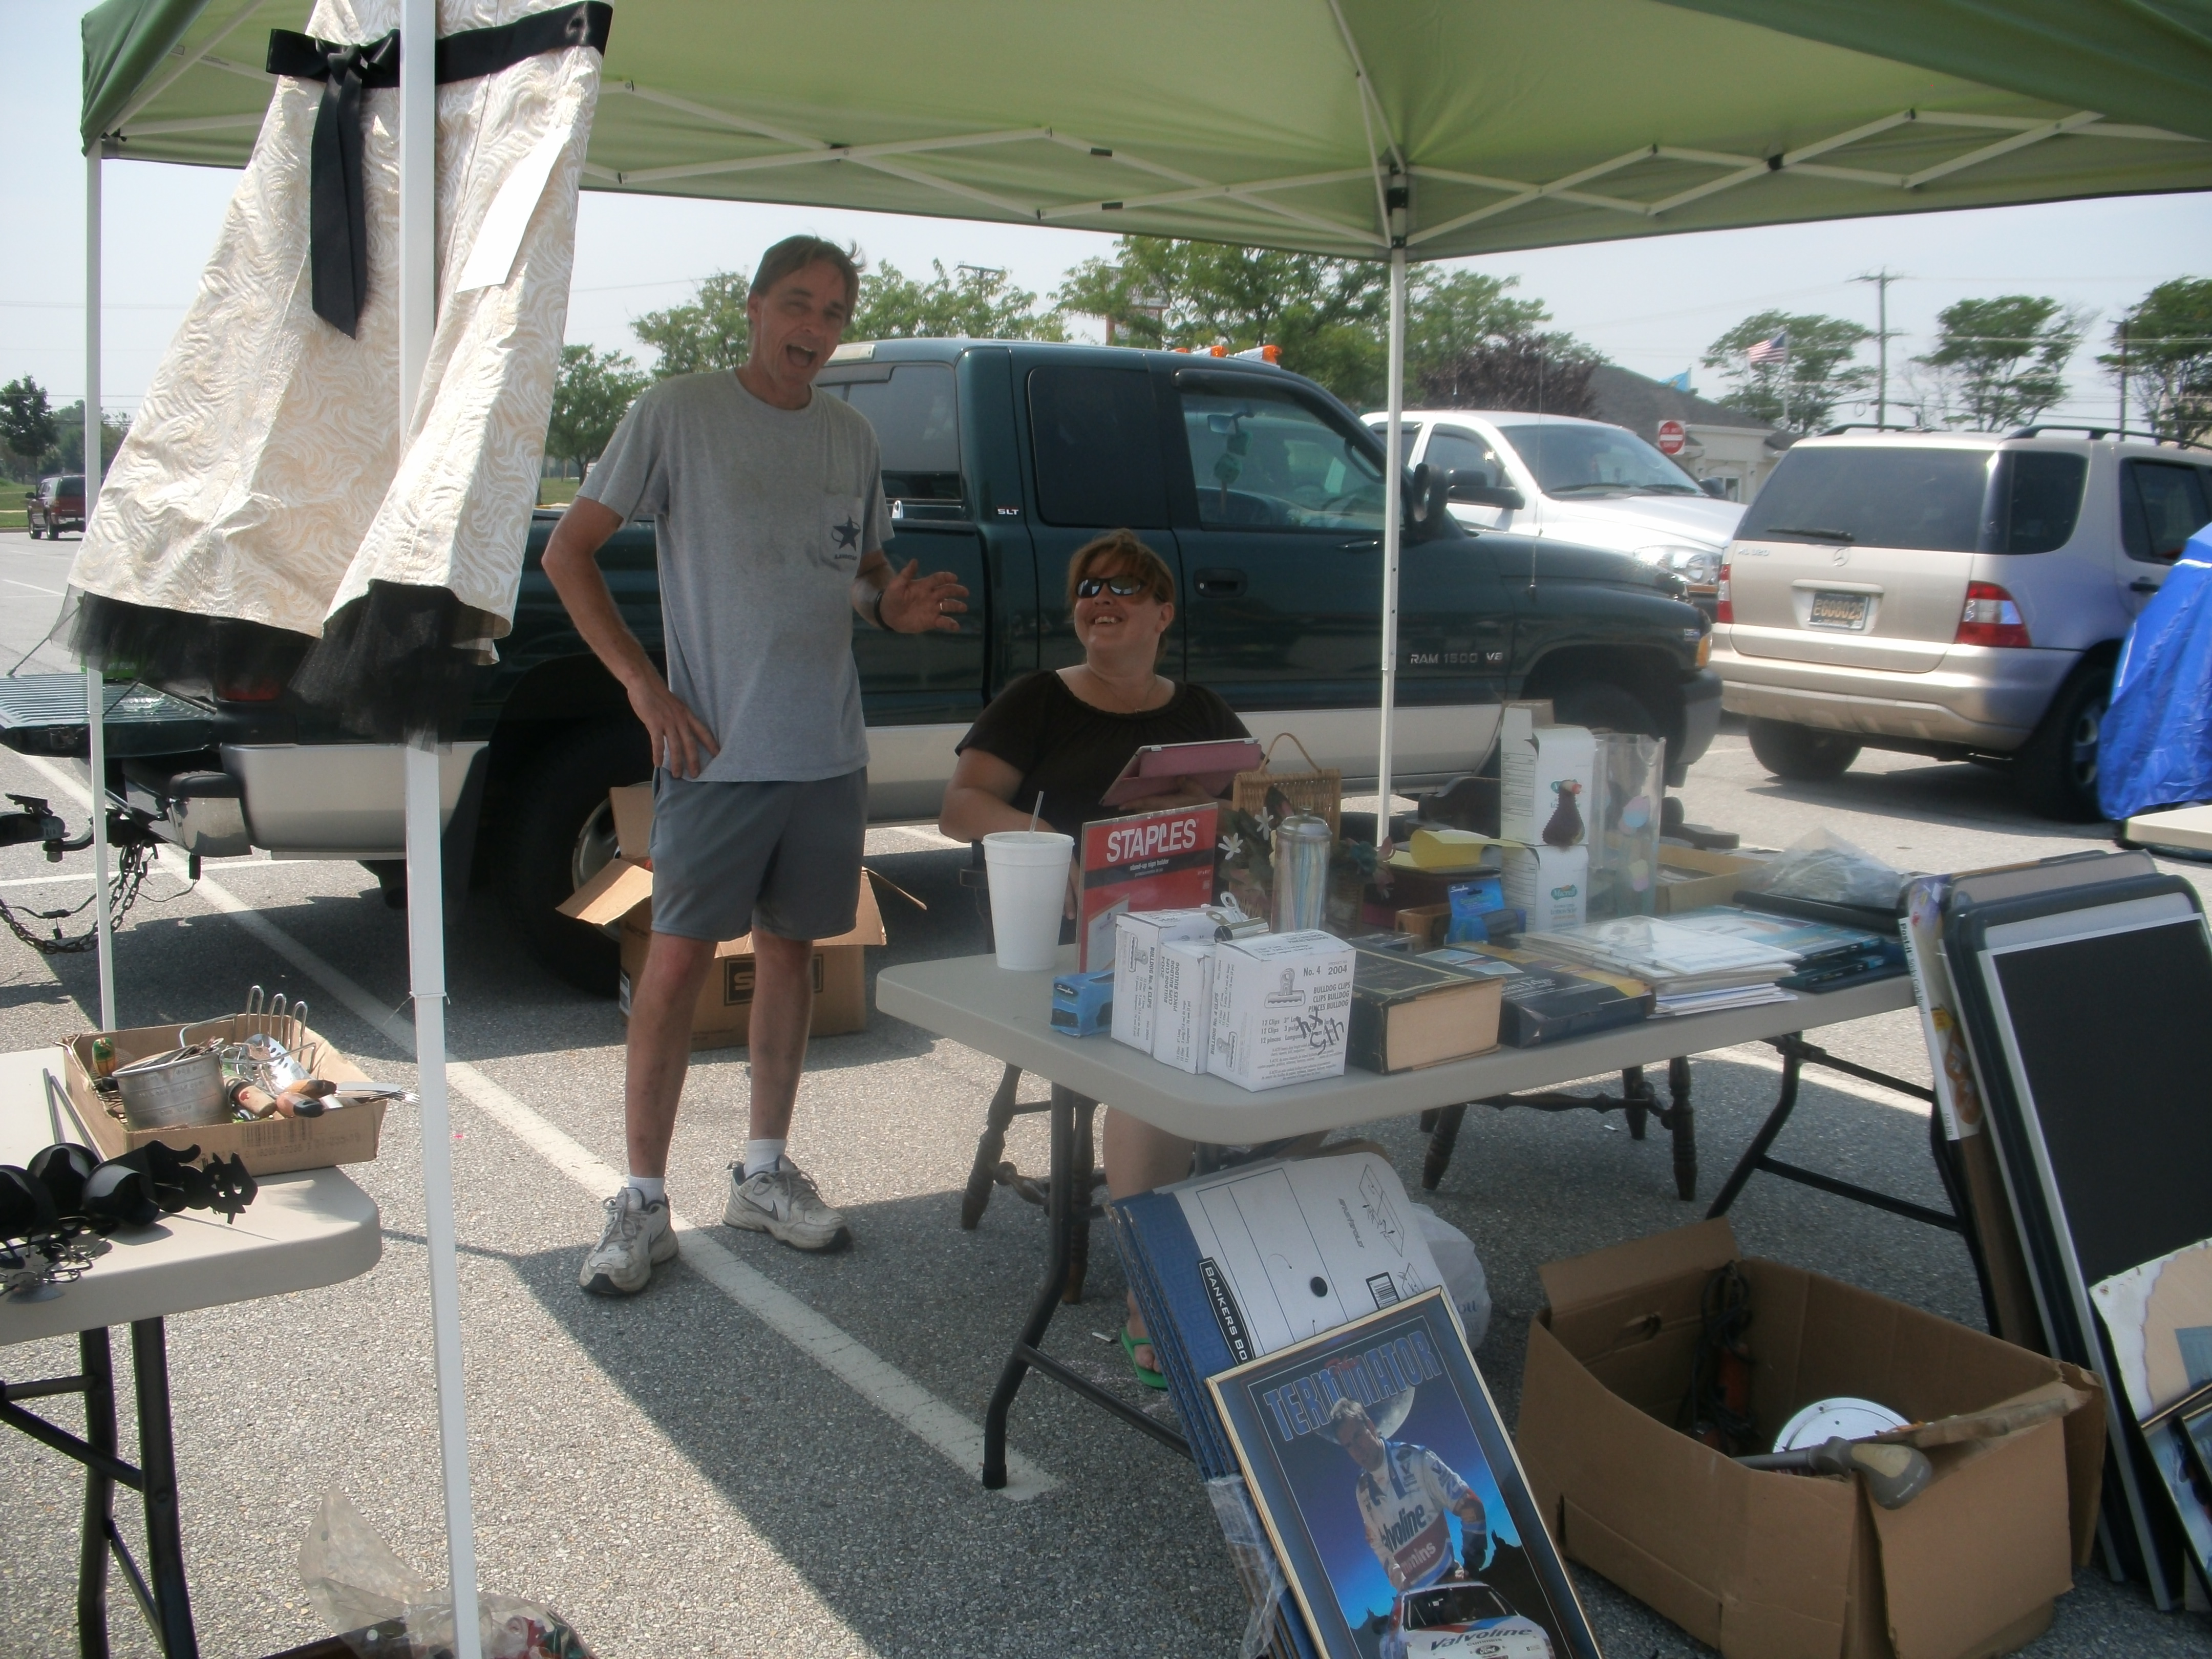 2012 09 Dan and Donna Metzgar vendor at Dutch Country Farmers Market in Middeltown.JPG